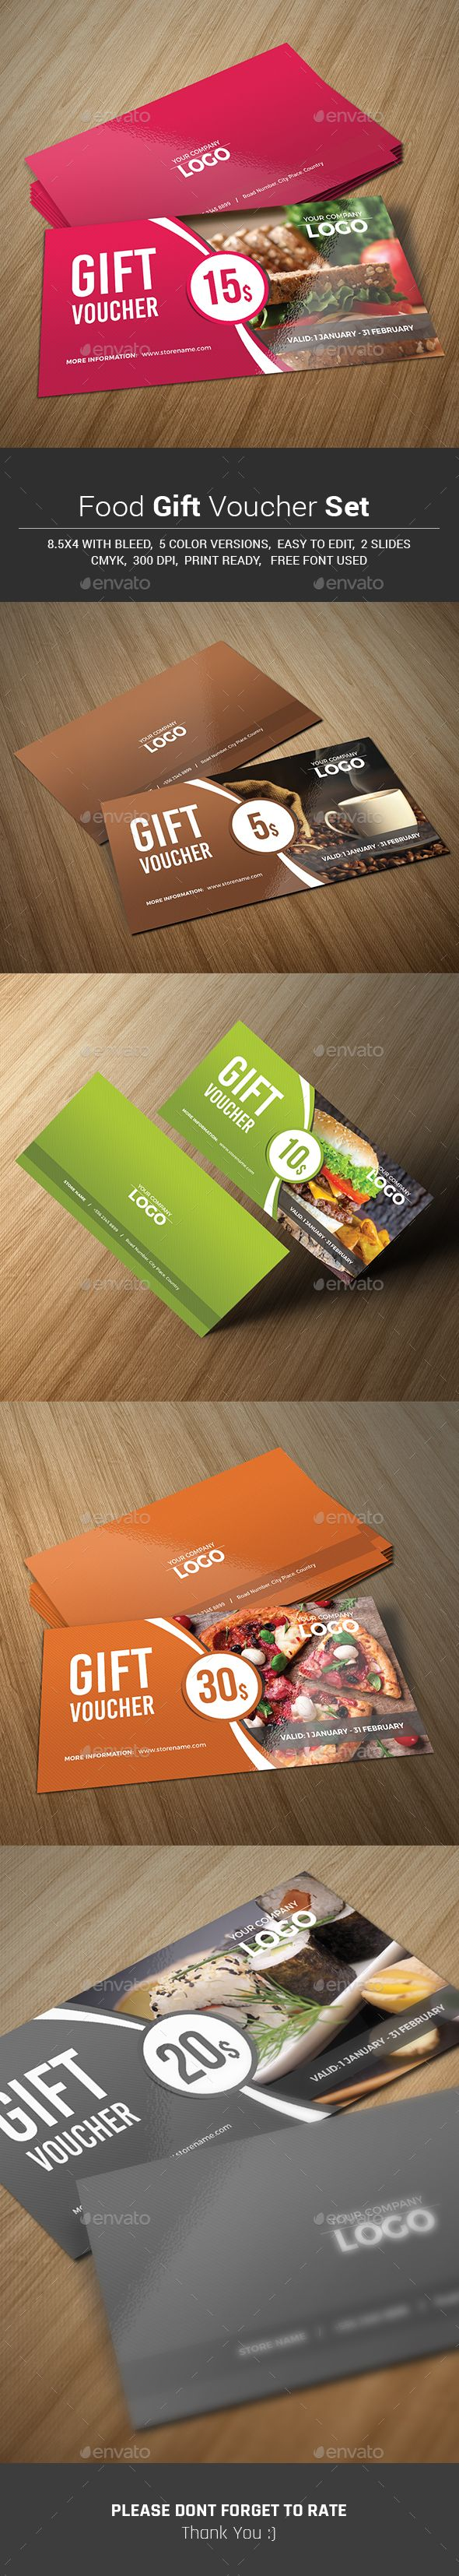 Print Your Own Business Cards Template